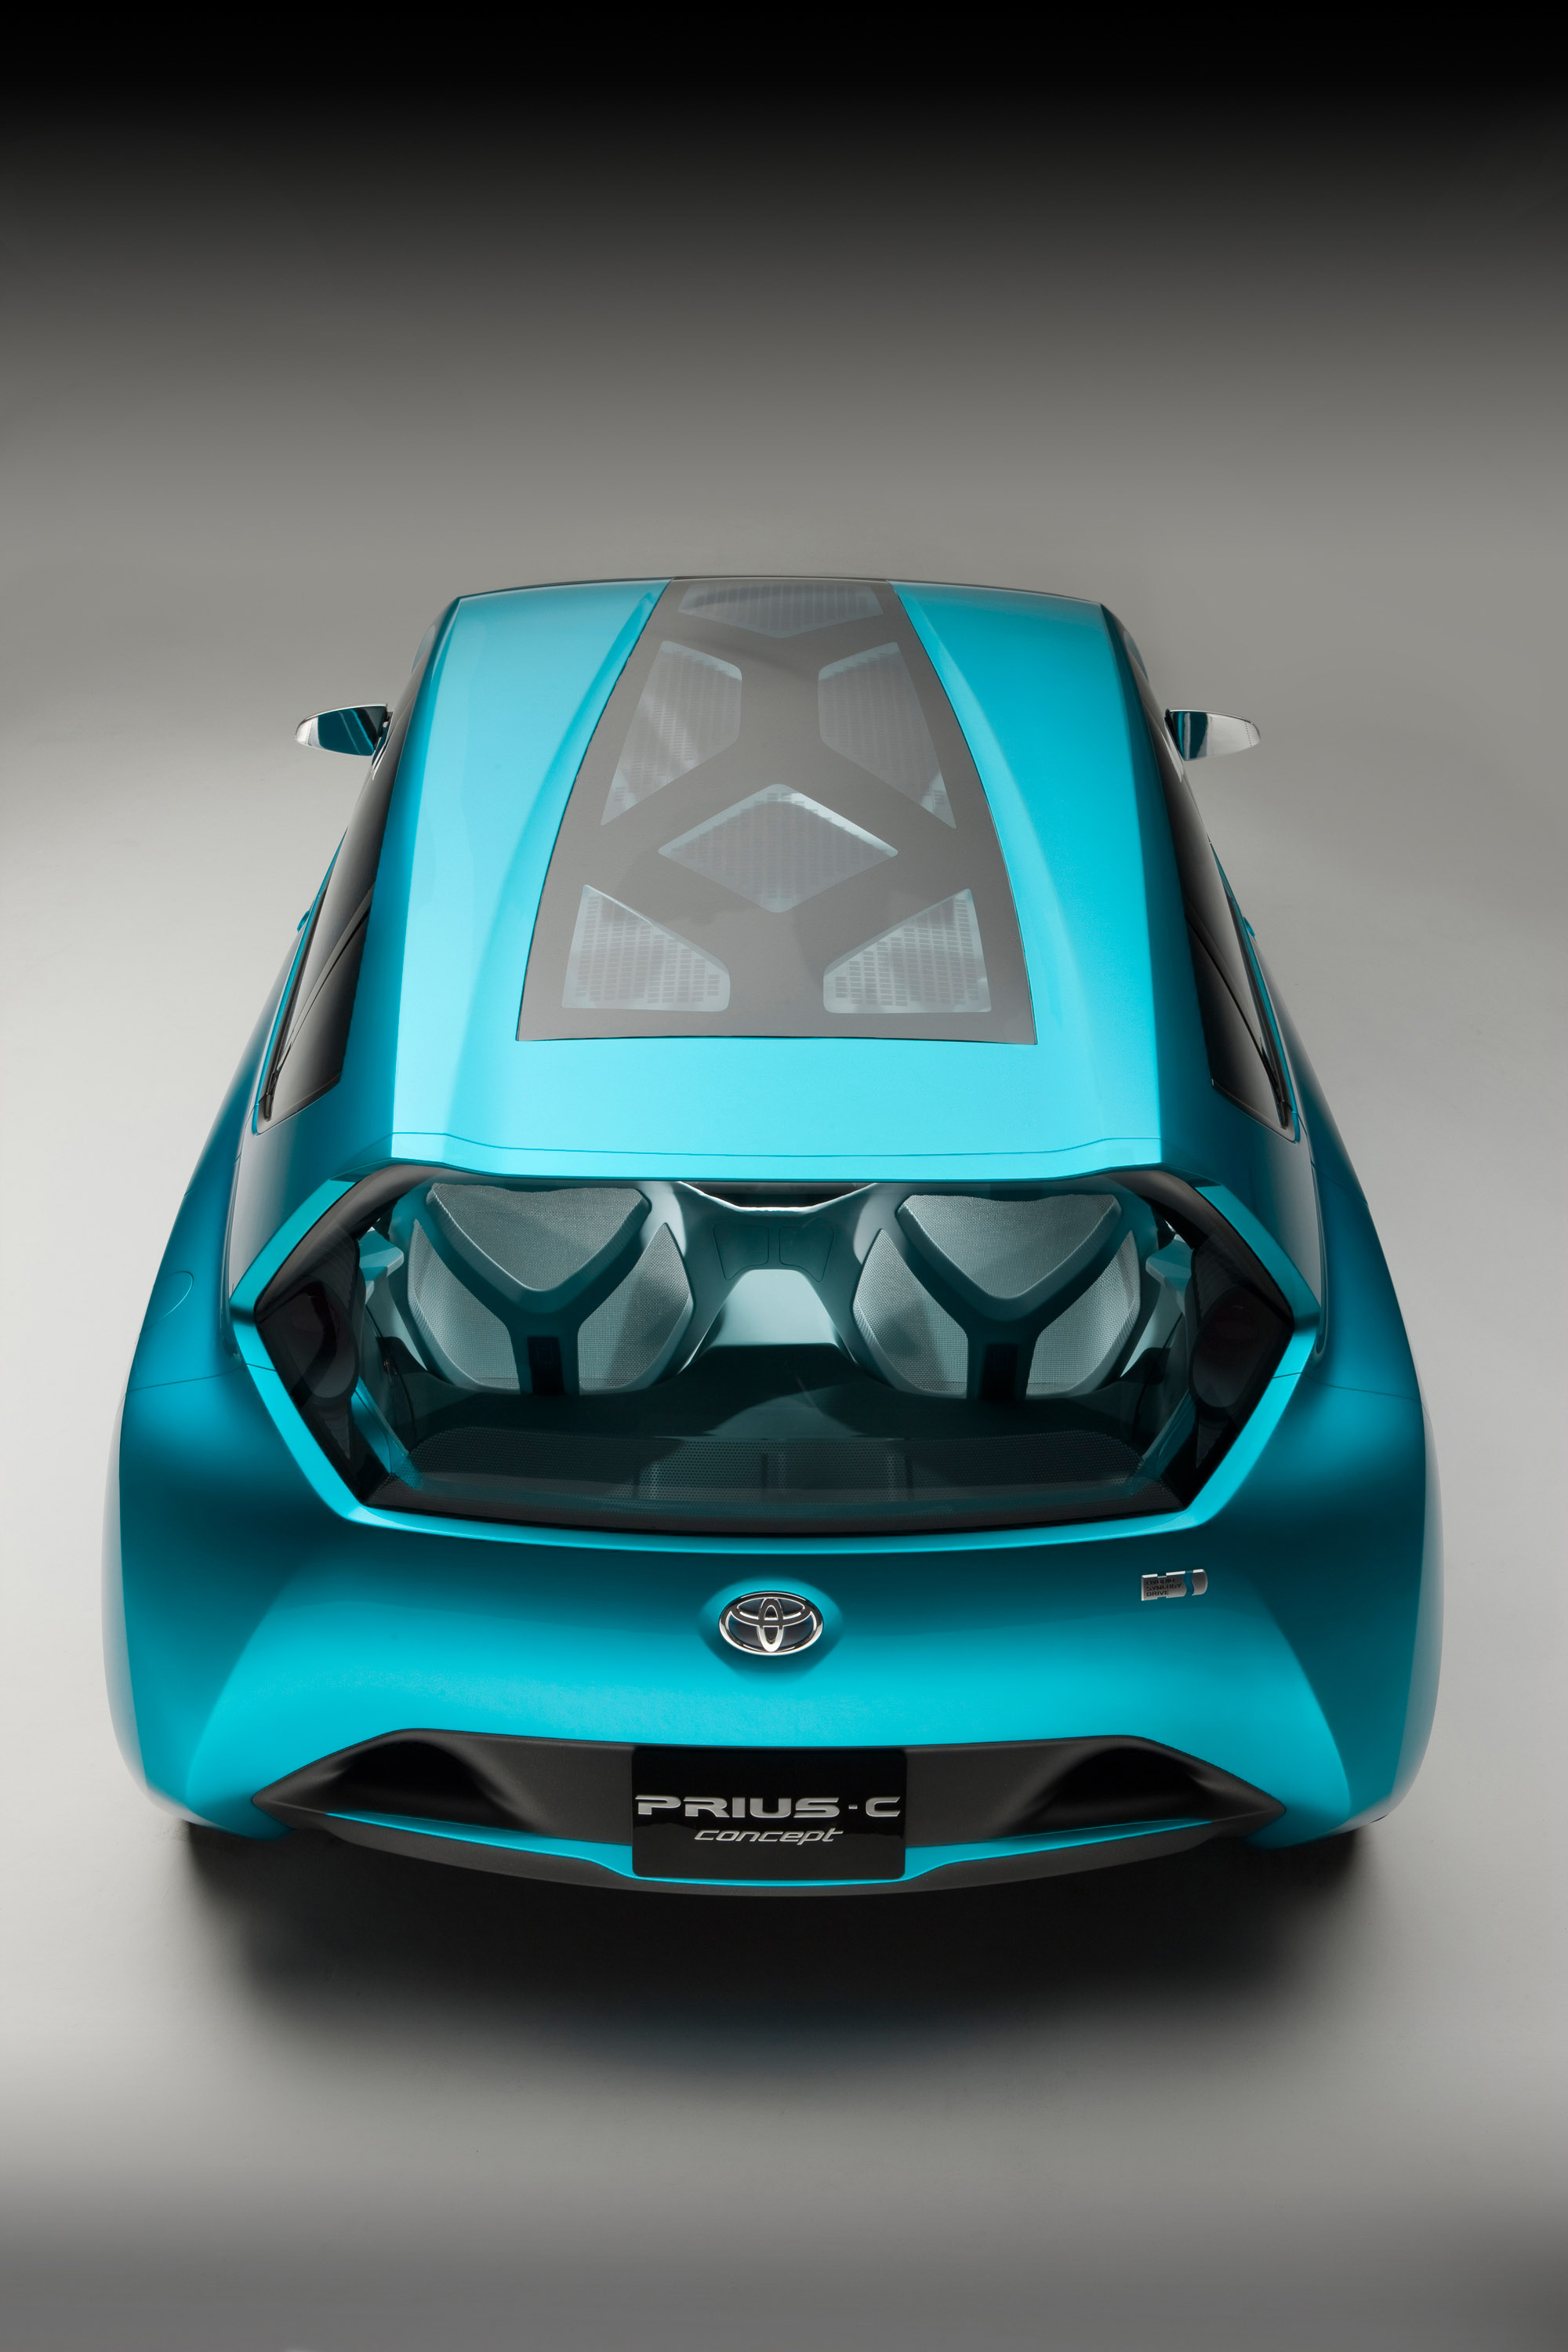 Toyota Prius Concept Cars Pictures & Wallpaper